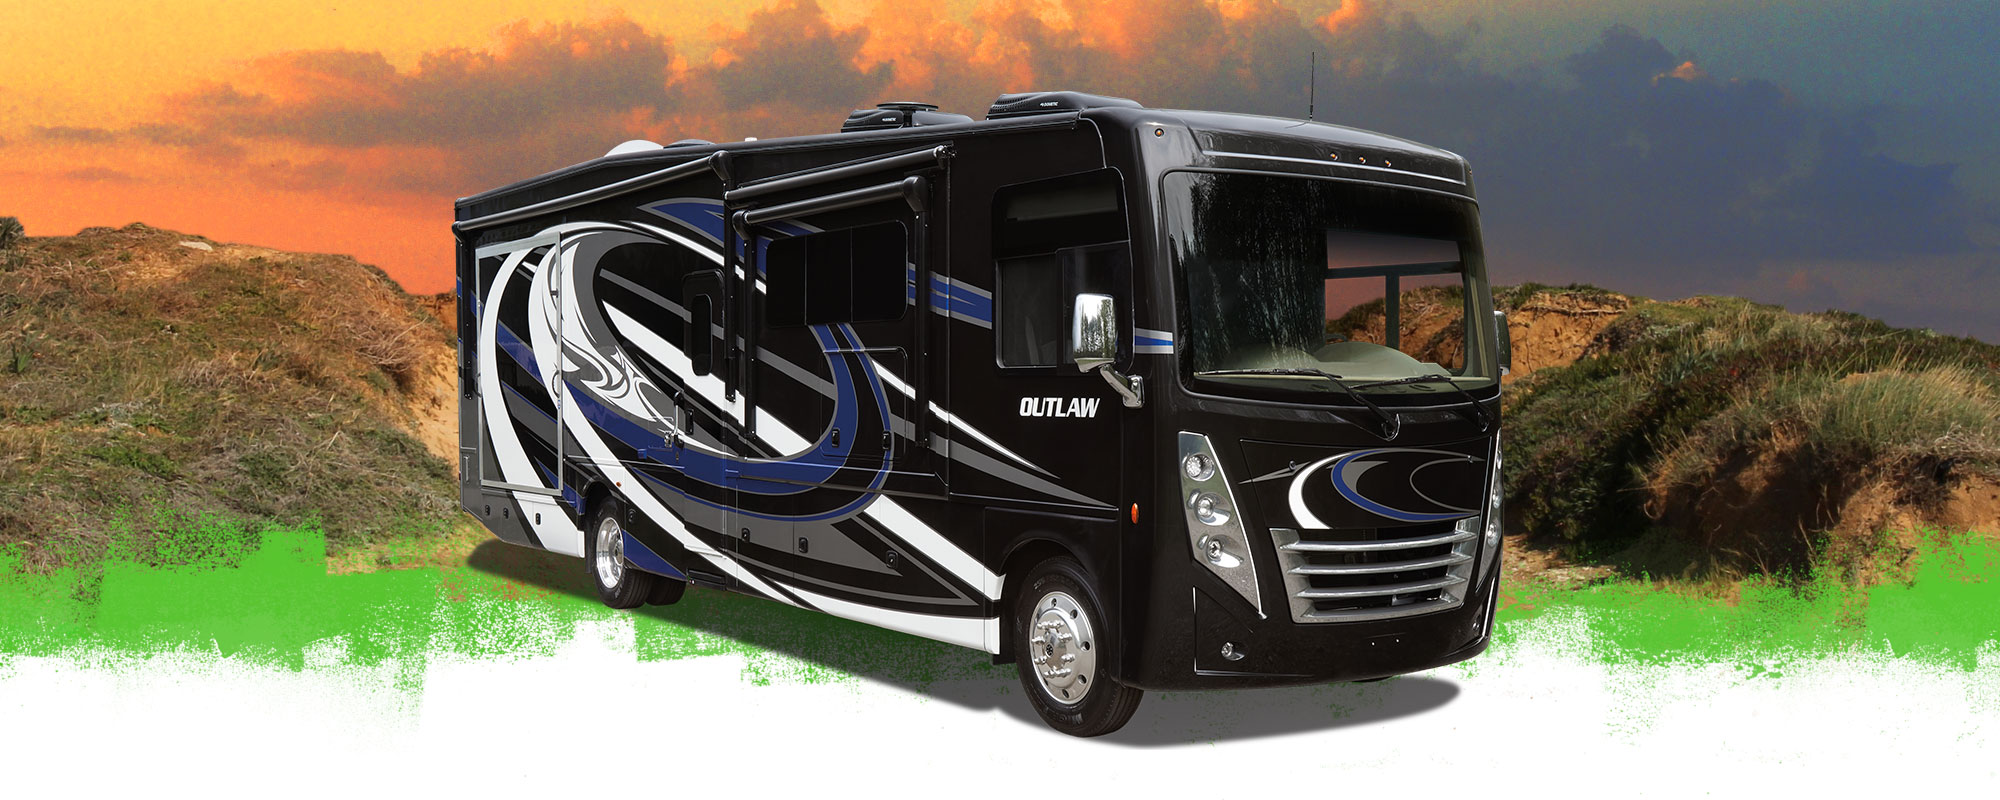 Outlaw 38MB Toy Hauler RVX Show